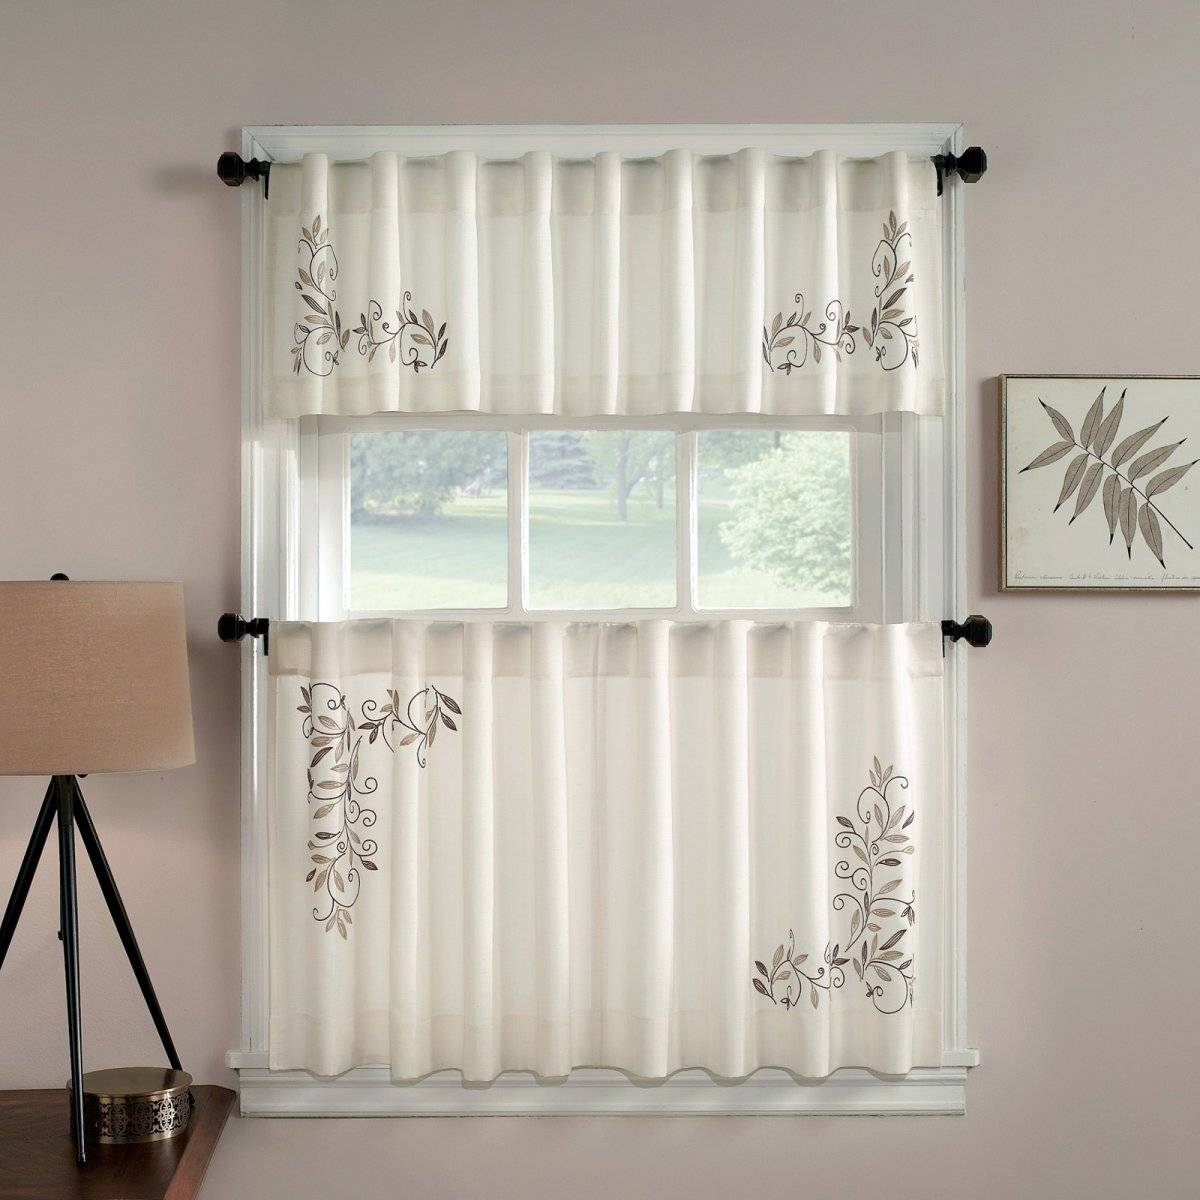 Kitchen Window Valances Target Country Bay Drapes Doors With Regard To Kitchen Window Tier Sets (Gallery 6 of 20)